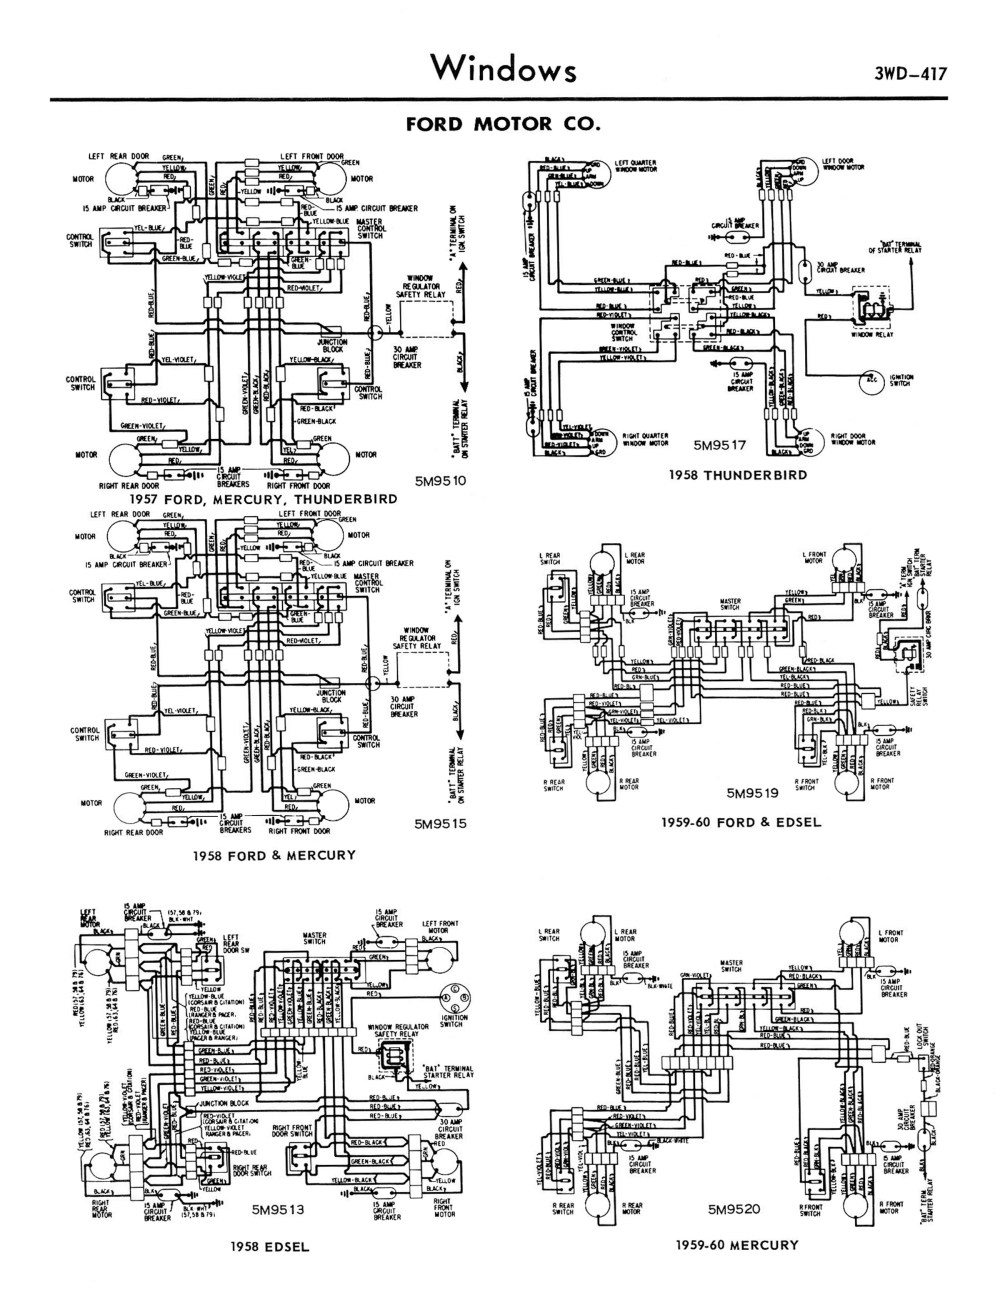 medium resolution of 1958 edsel wiring diagram